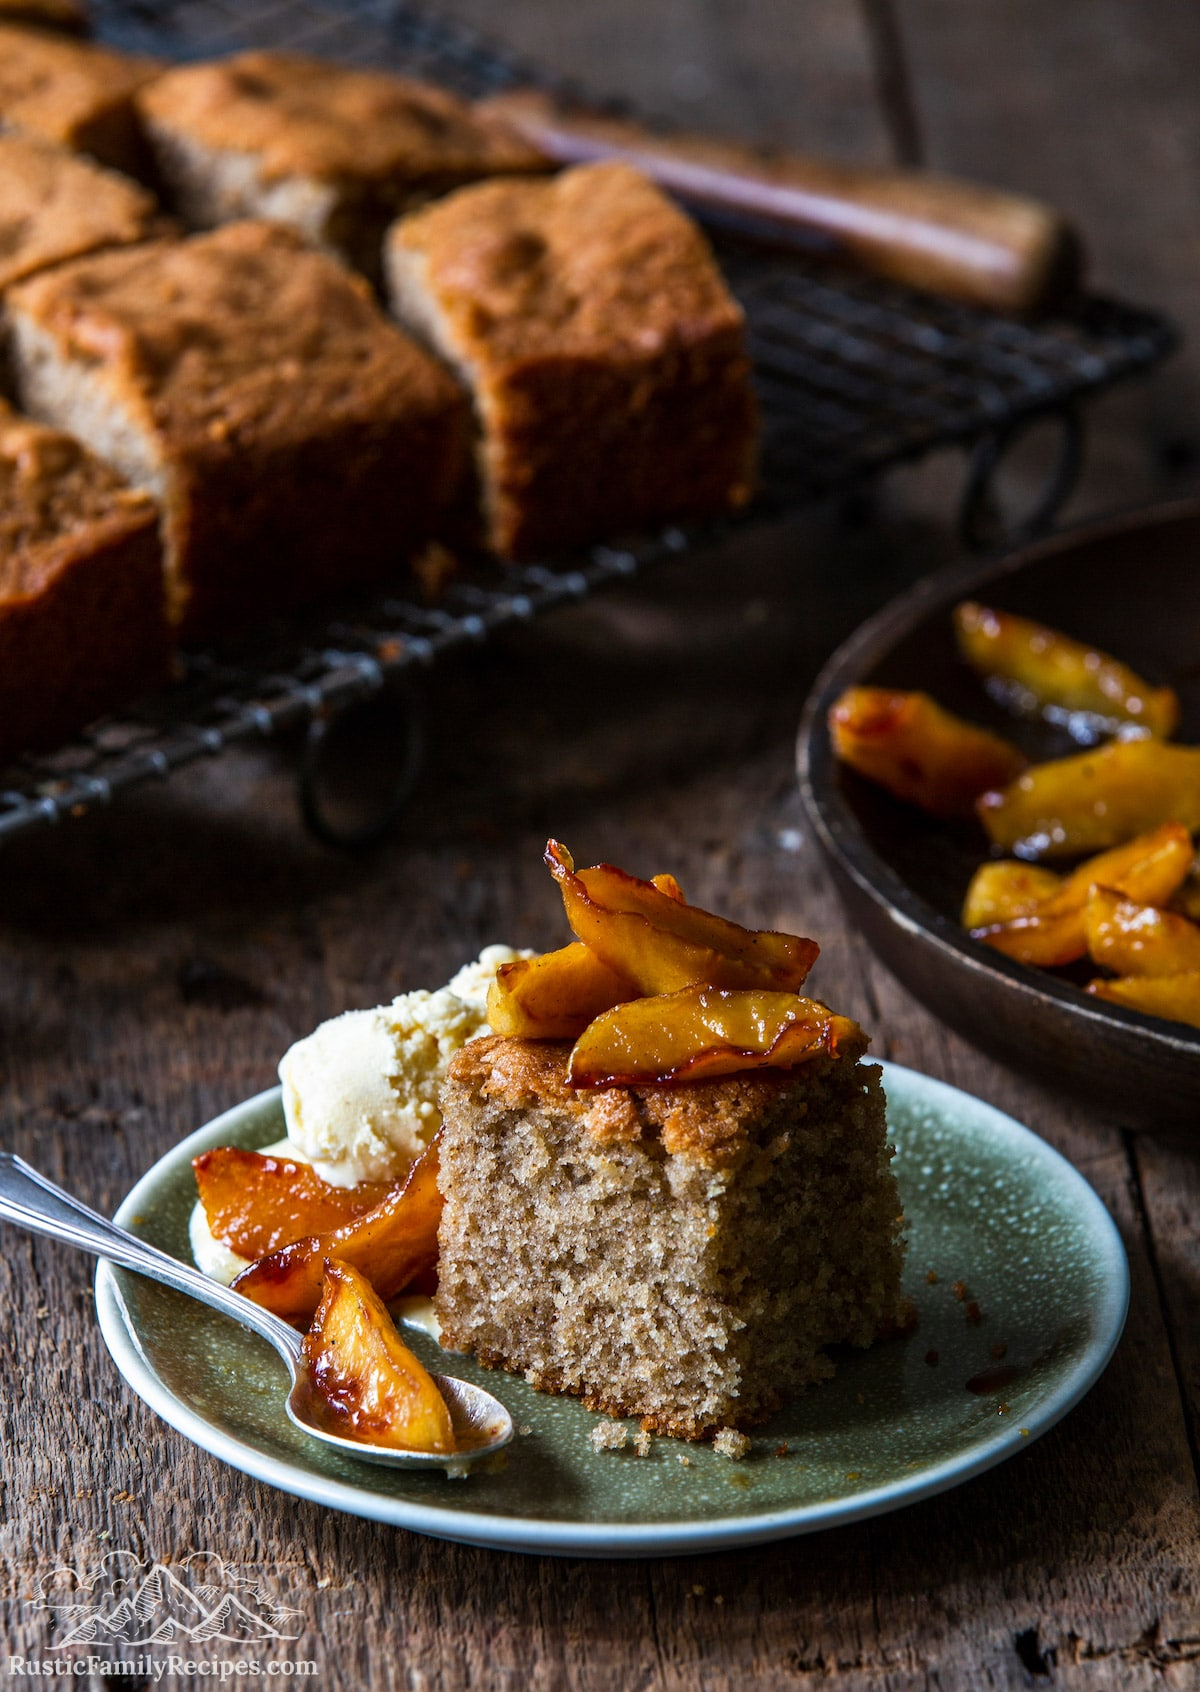 Spice Cake With Caramelized Apples on plate in front of wire rack